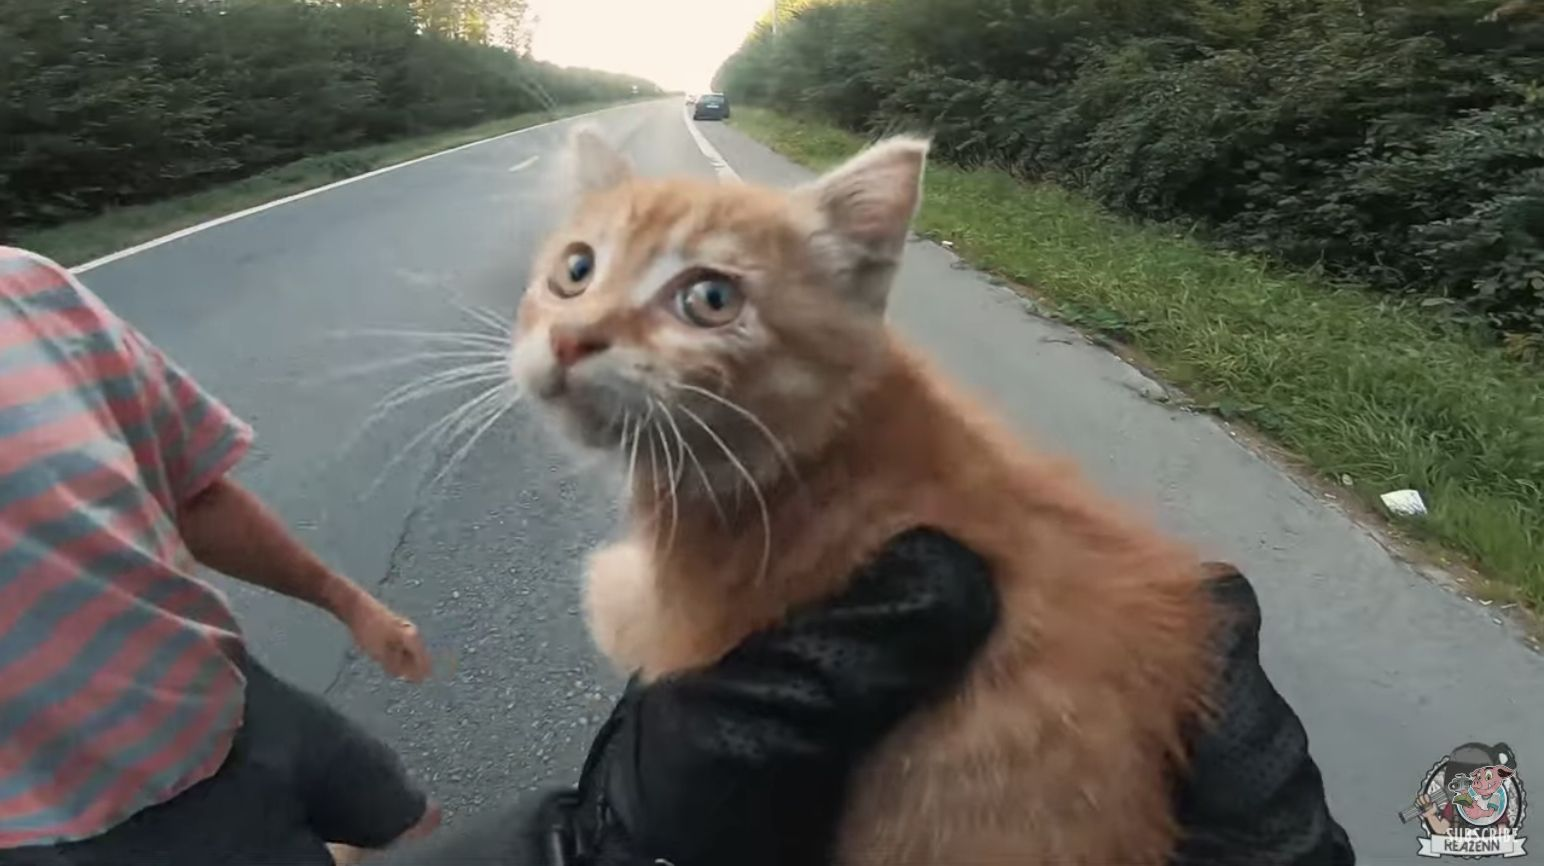 Quick Thinking Motorcyclist Rescues Tiny Kitten Kitten Rescue Kittens Tiny Kitten